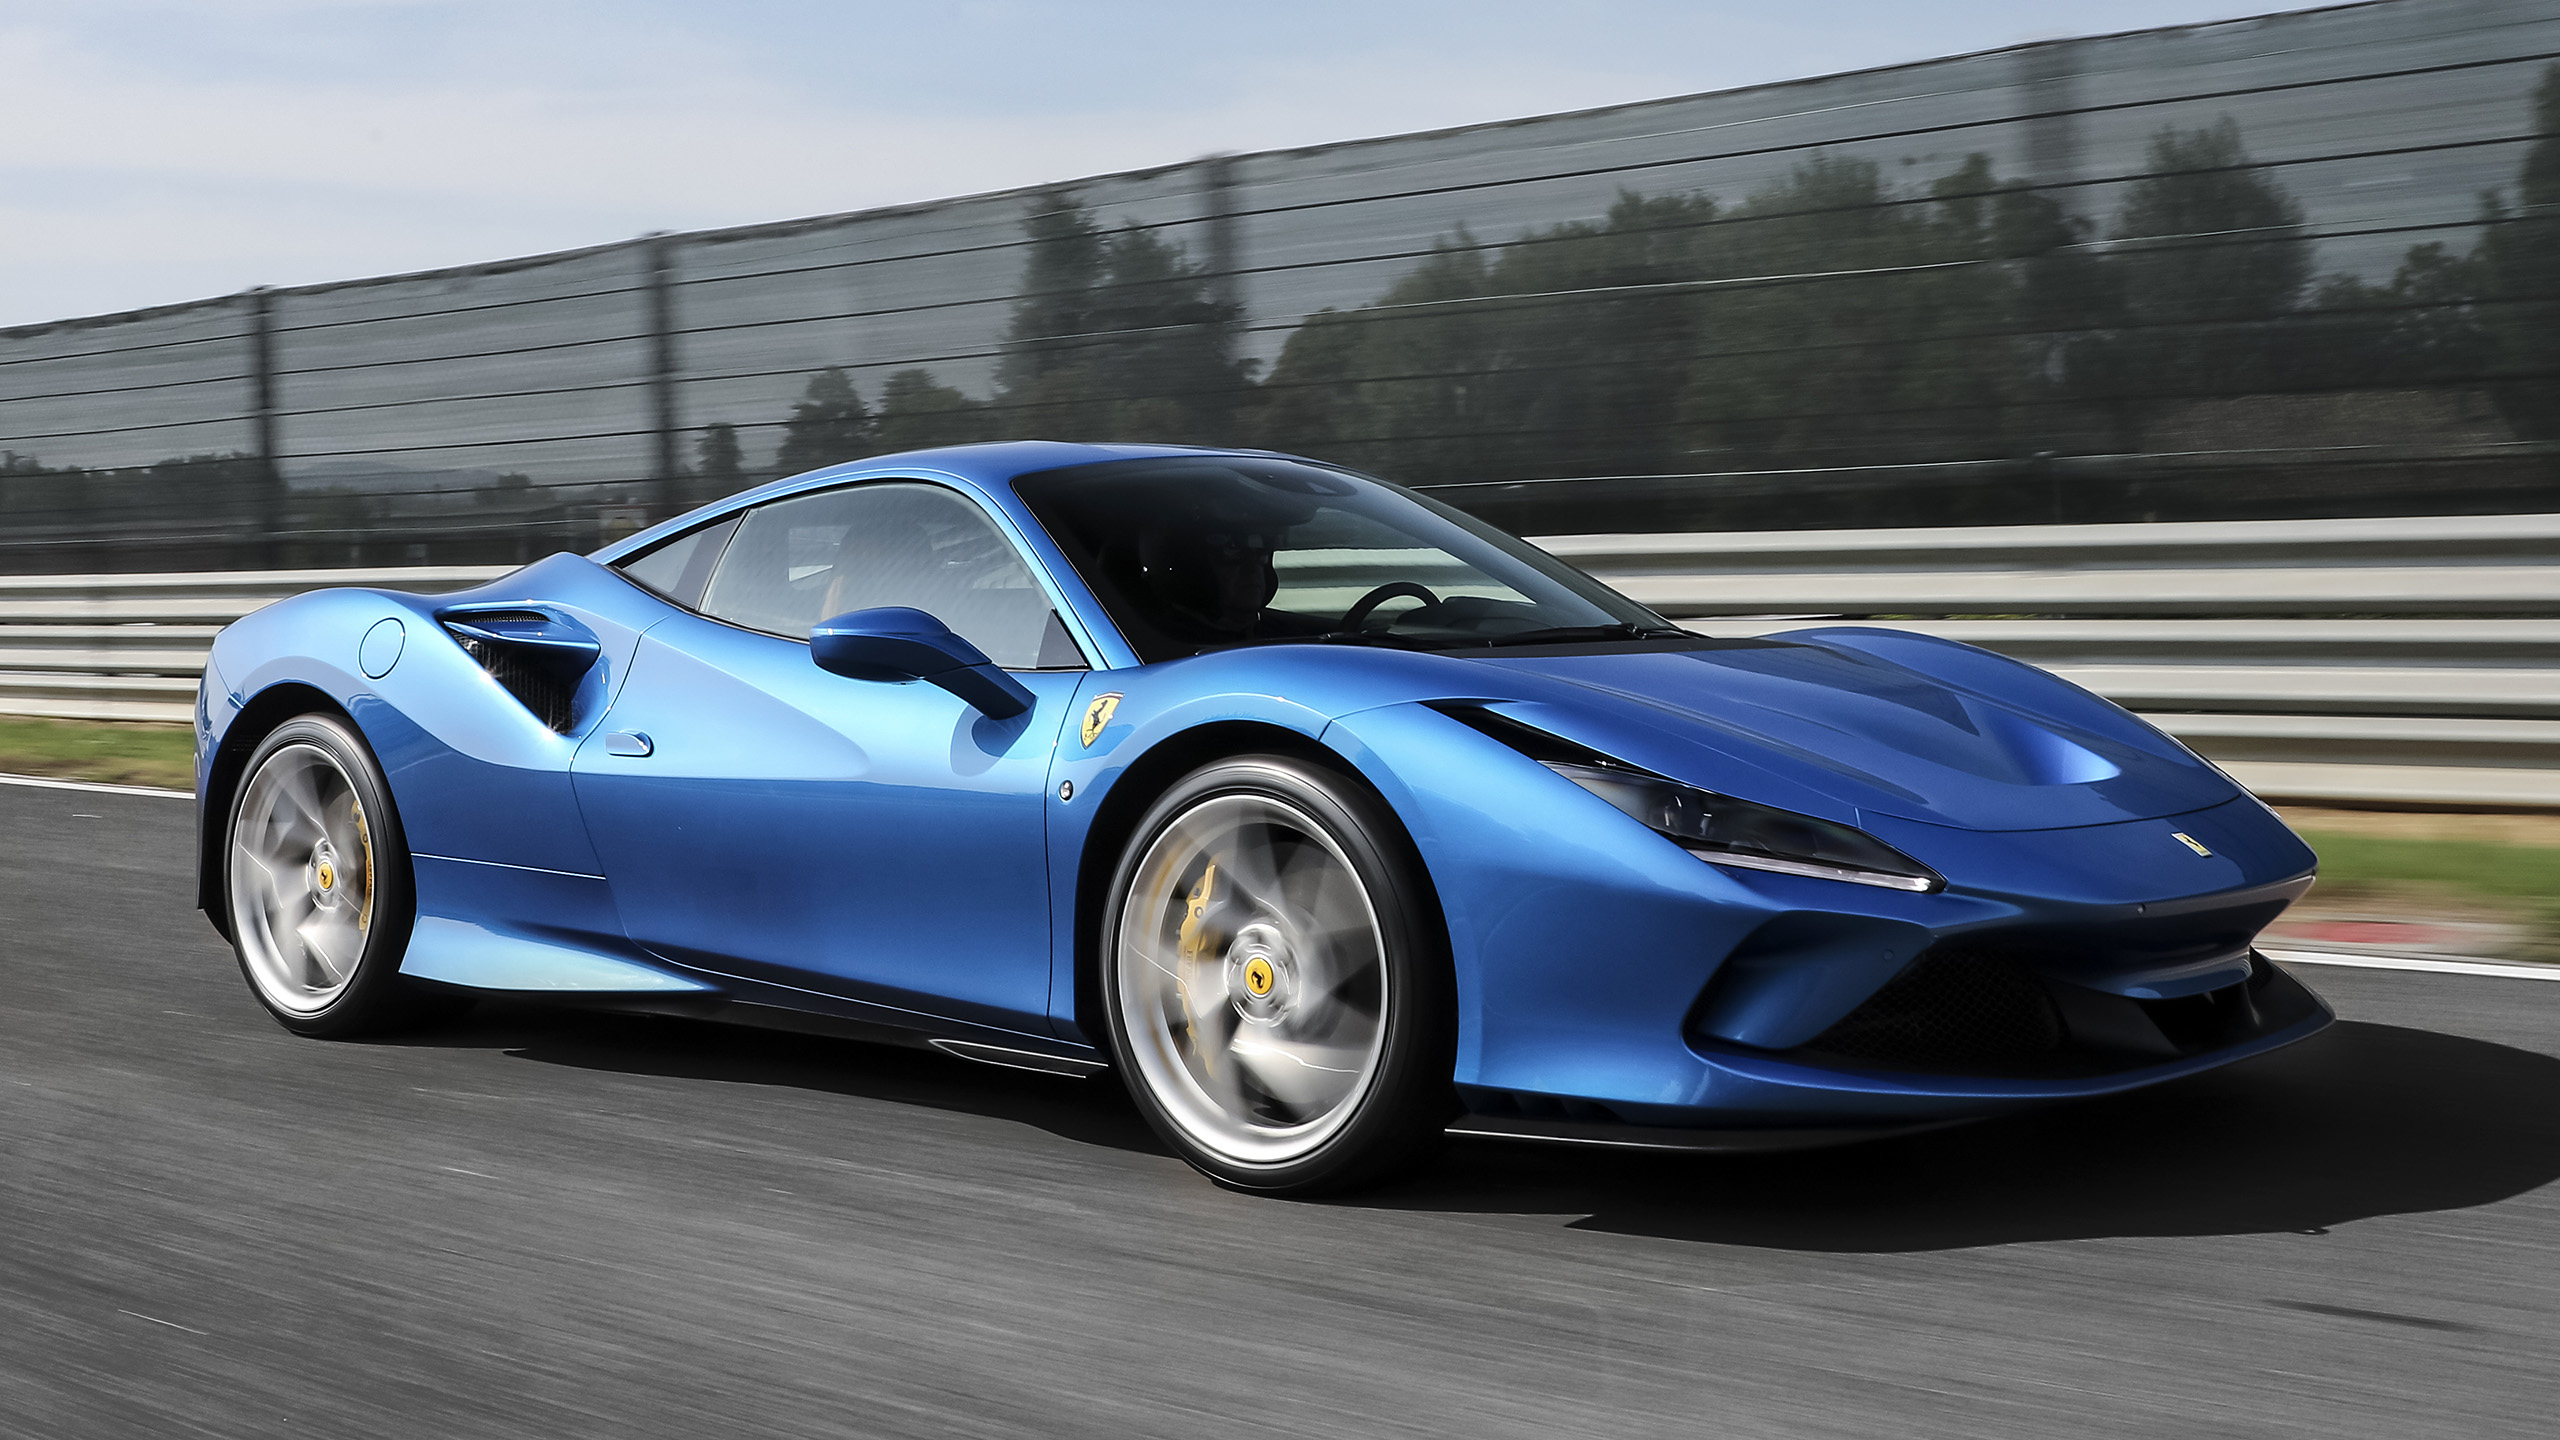 2020 Ferrari F8 Tributo First Drive Review Photos Specs Impressions Autoblog